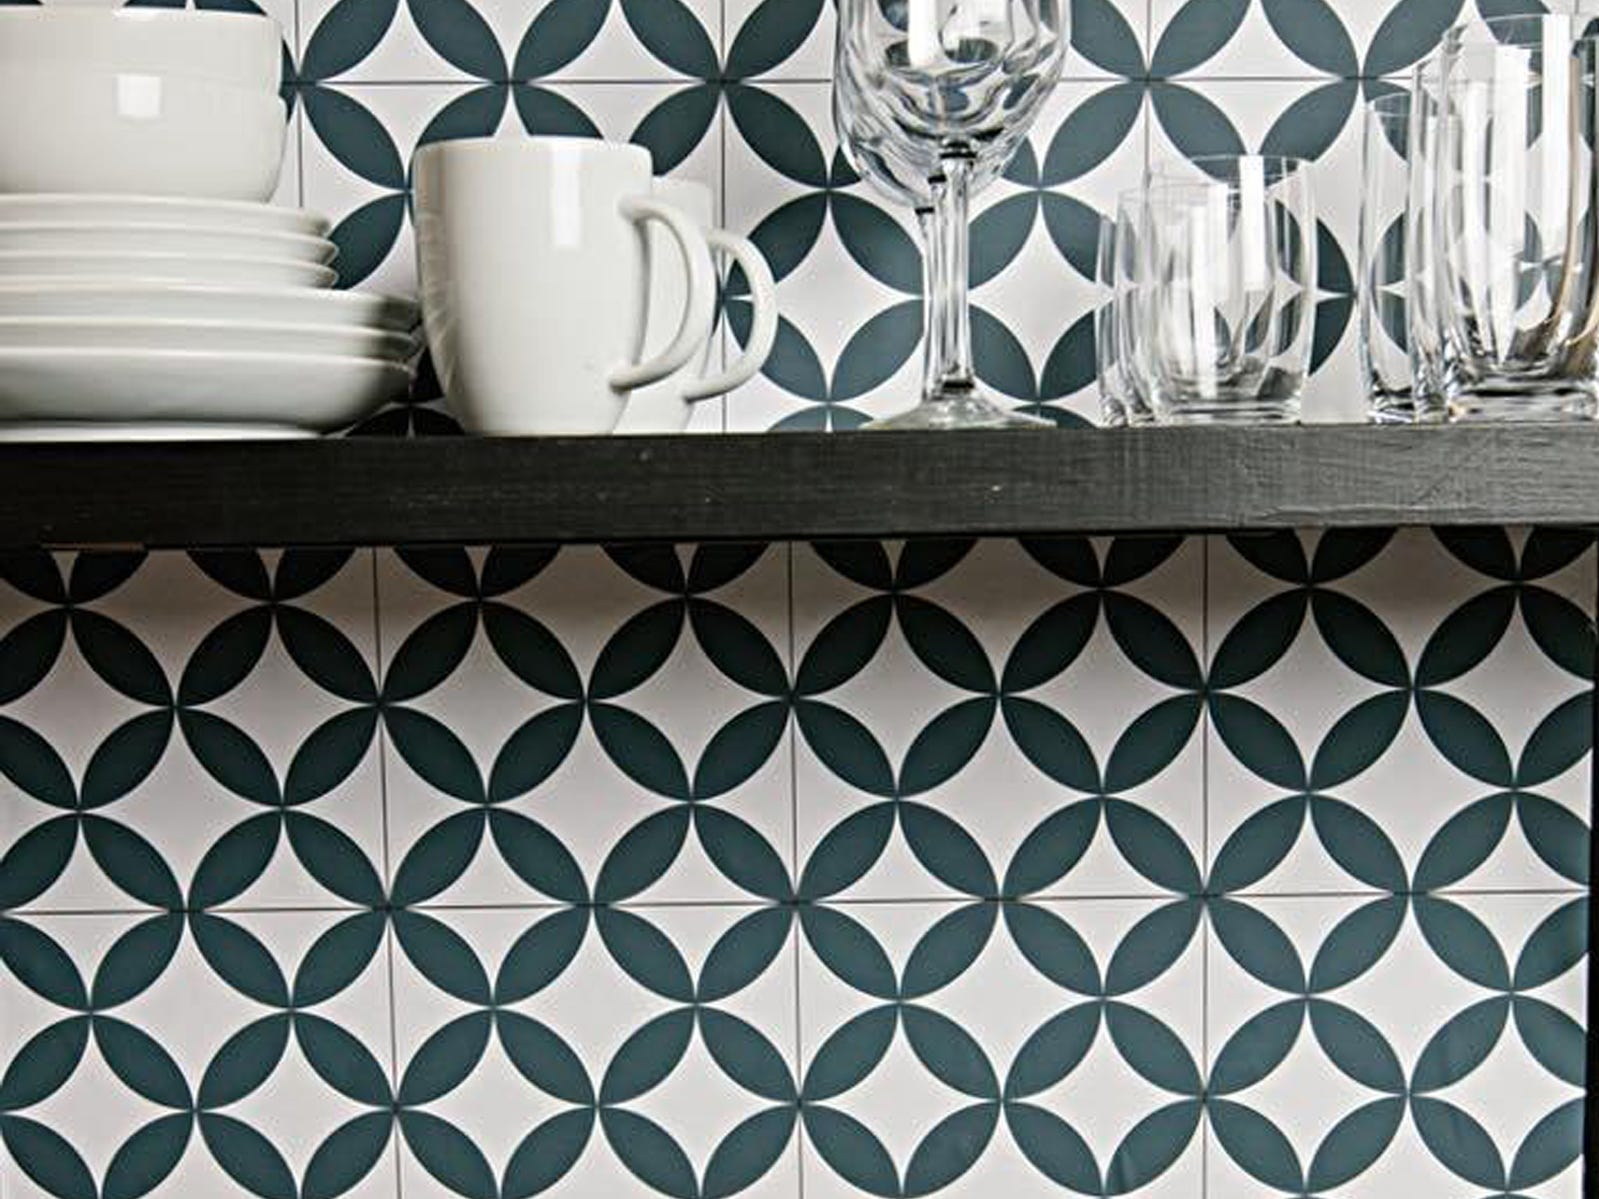 Chasing Paper, a Milwaukee company, offers a line of removable wallpaper. This is its Farmhouse Tile pattern.